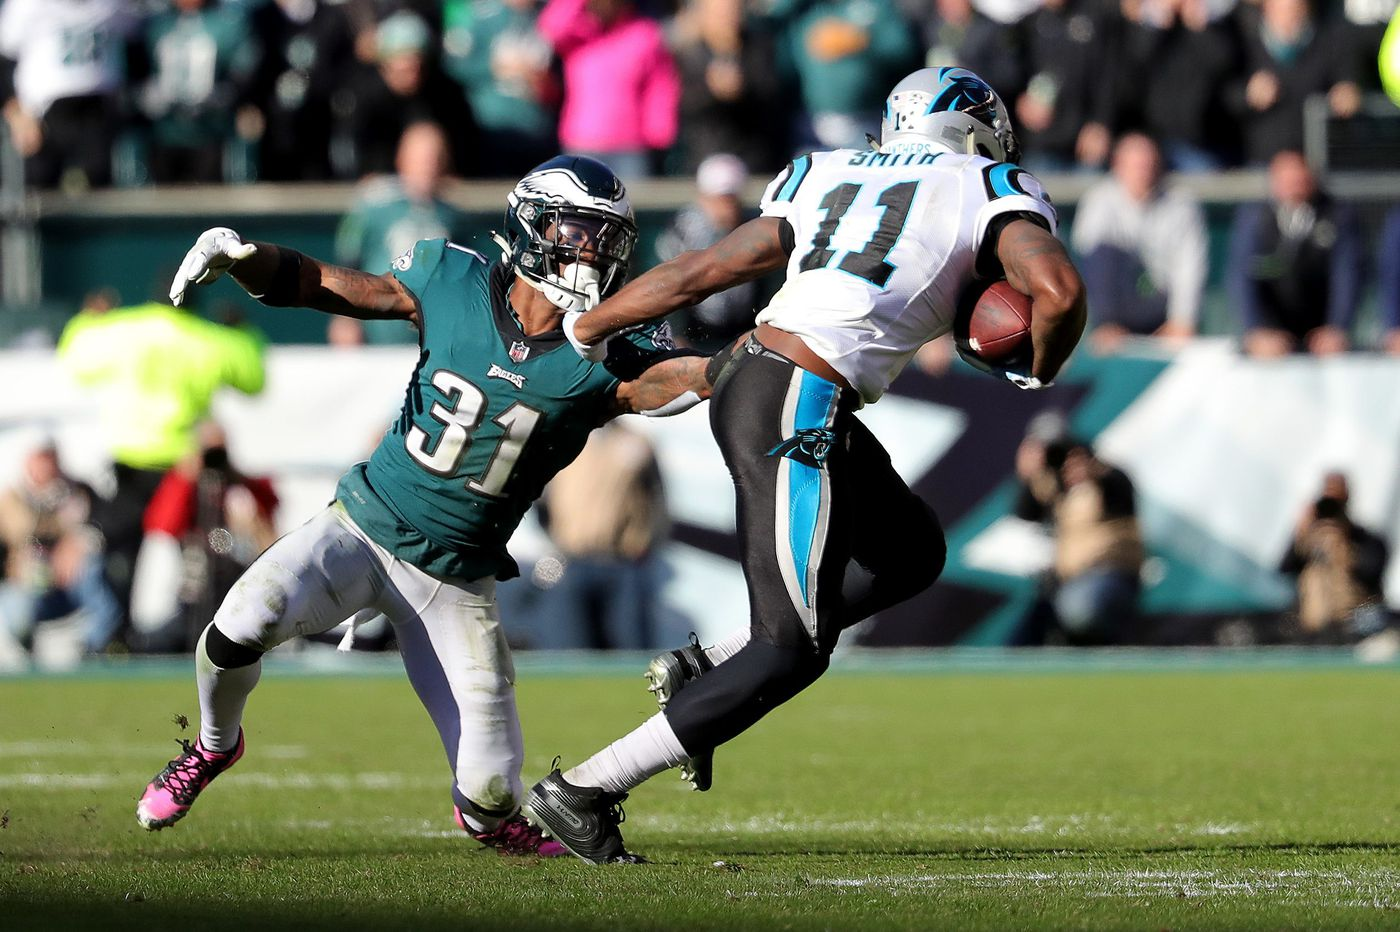 Panthers 21, Eagles 17: Birds give up 17-point lead in fourth quarter for worst collapse in years